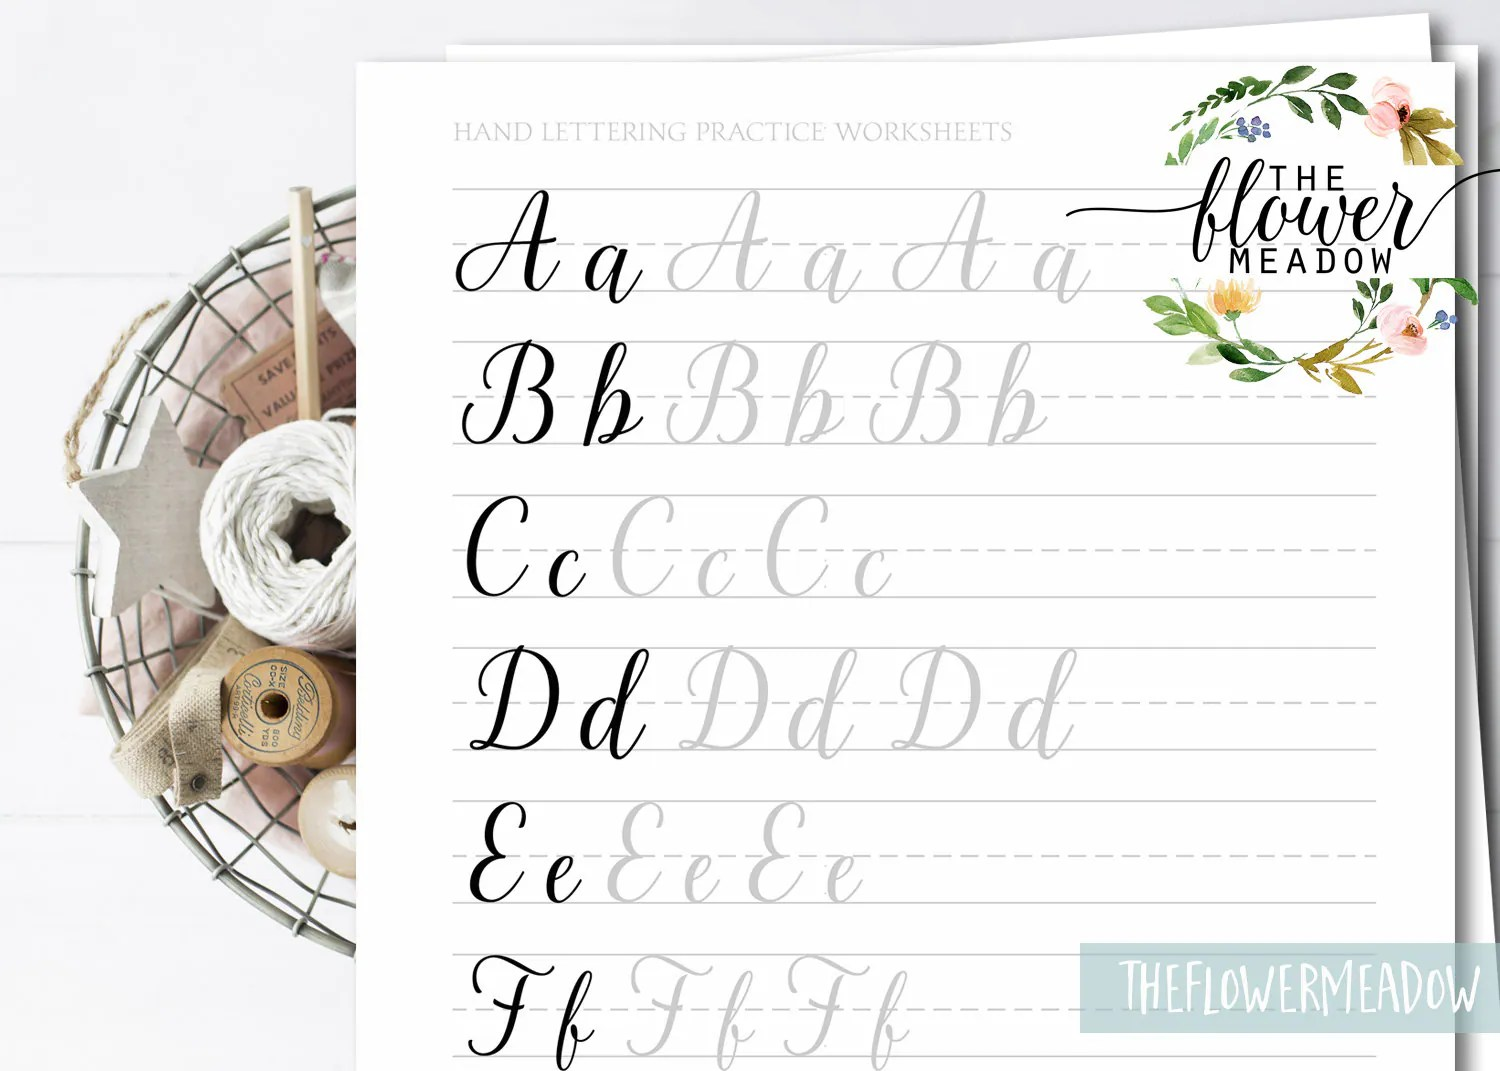 Lettering Practice Learn Calligraphy Hand Lettering Guide